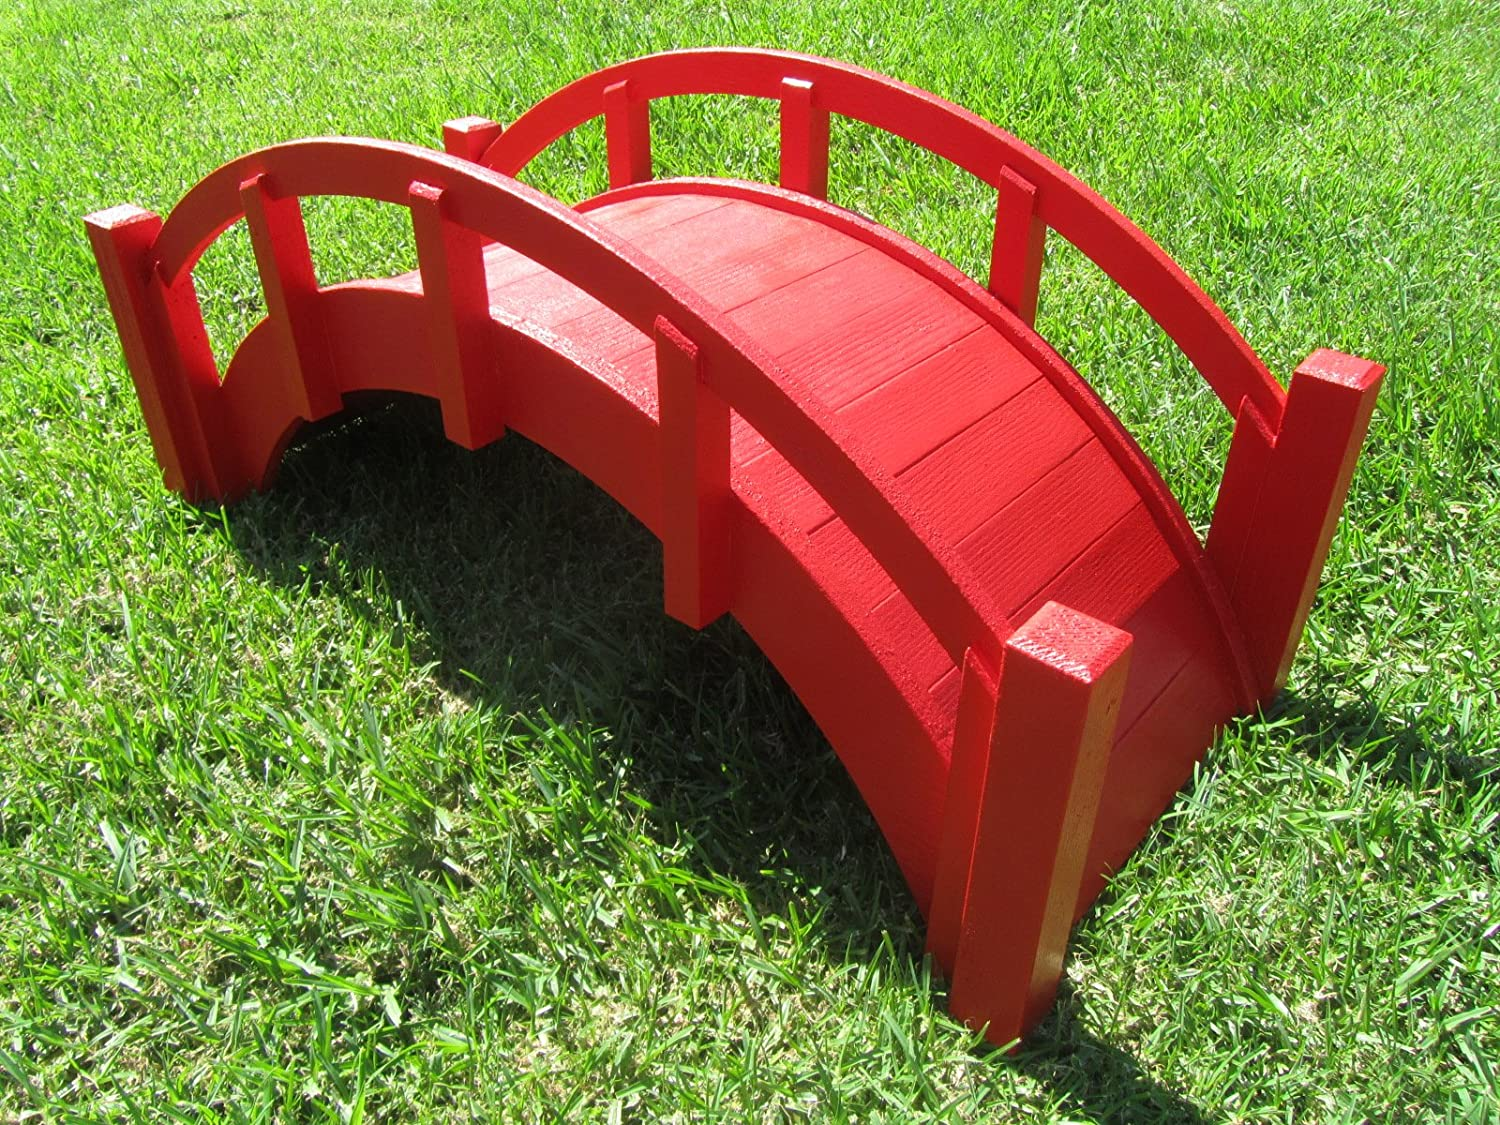 amazoncom samsgazebos miniature japanese wood garden bridge red assembled 25 long x 11 tall x 11 12 wide made in usa decorative red oriental - Red Japanese Garden Bridge